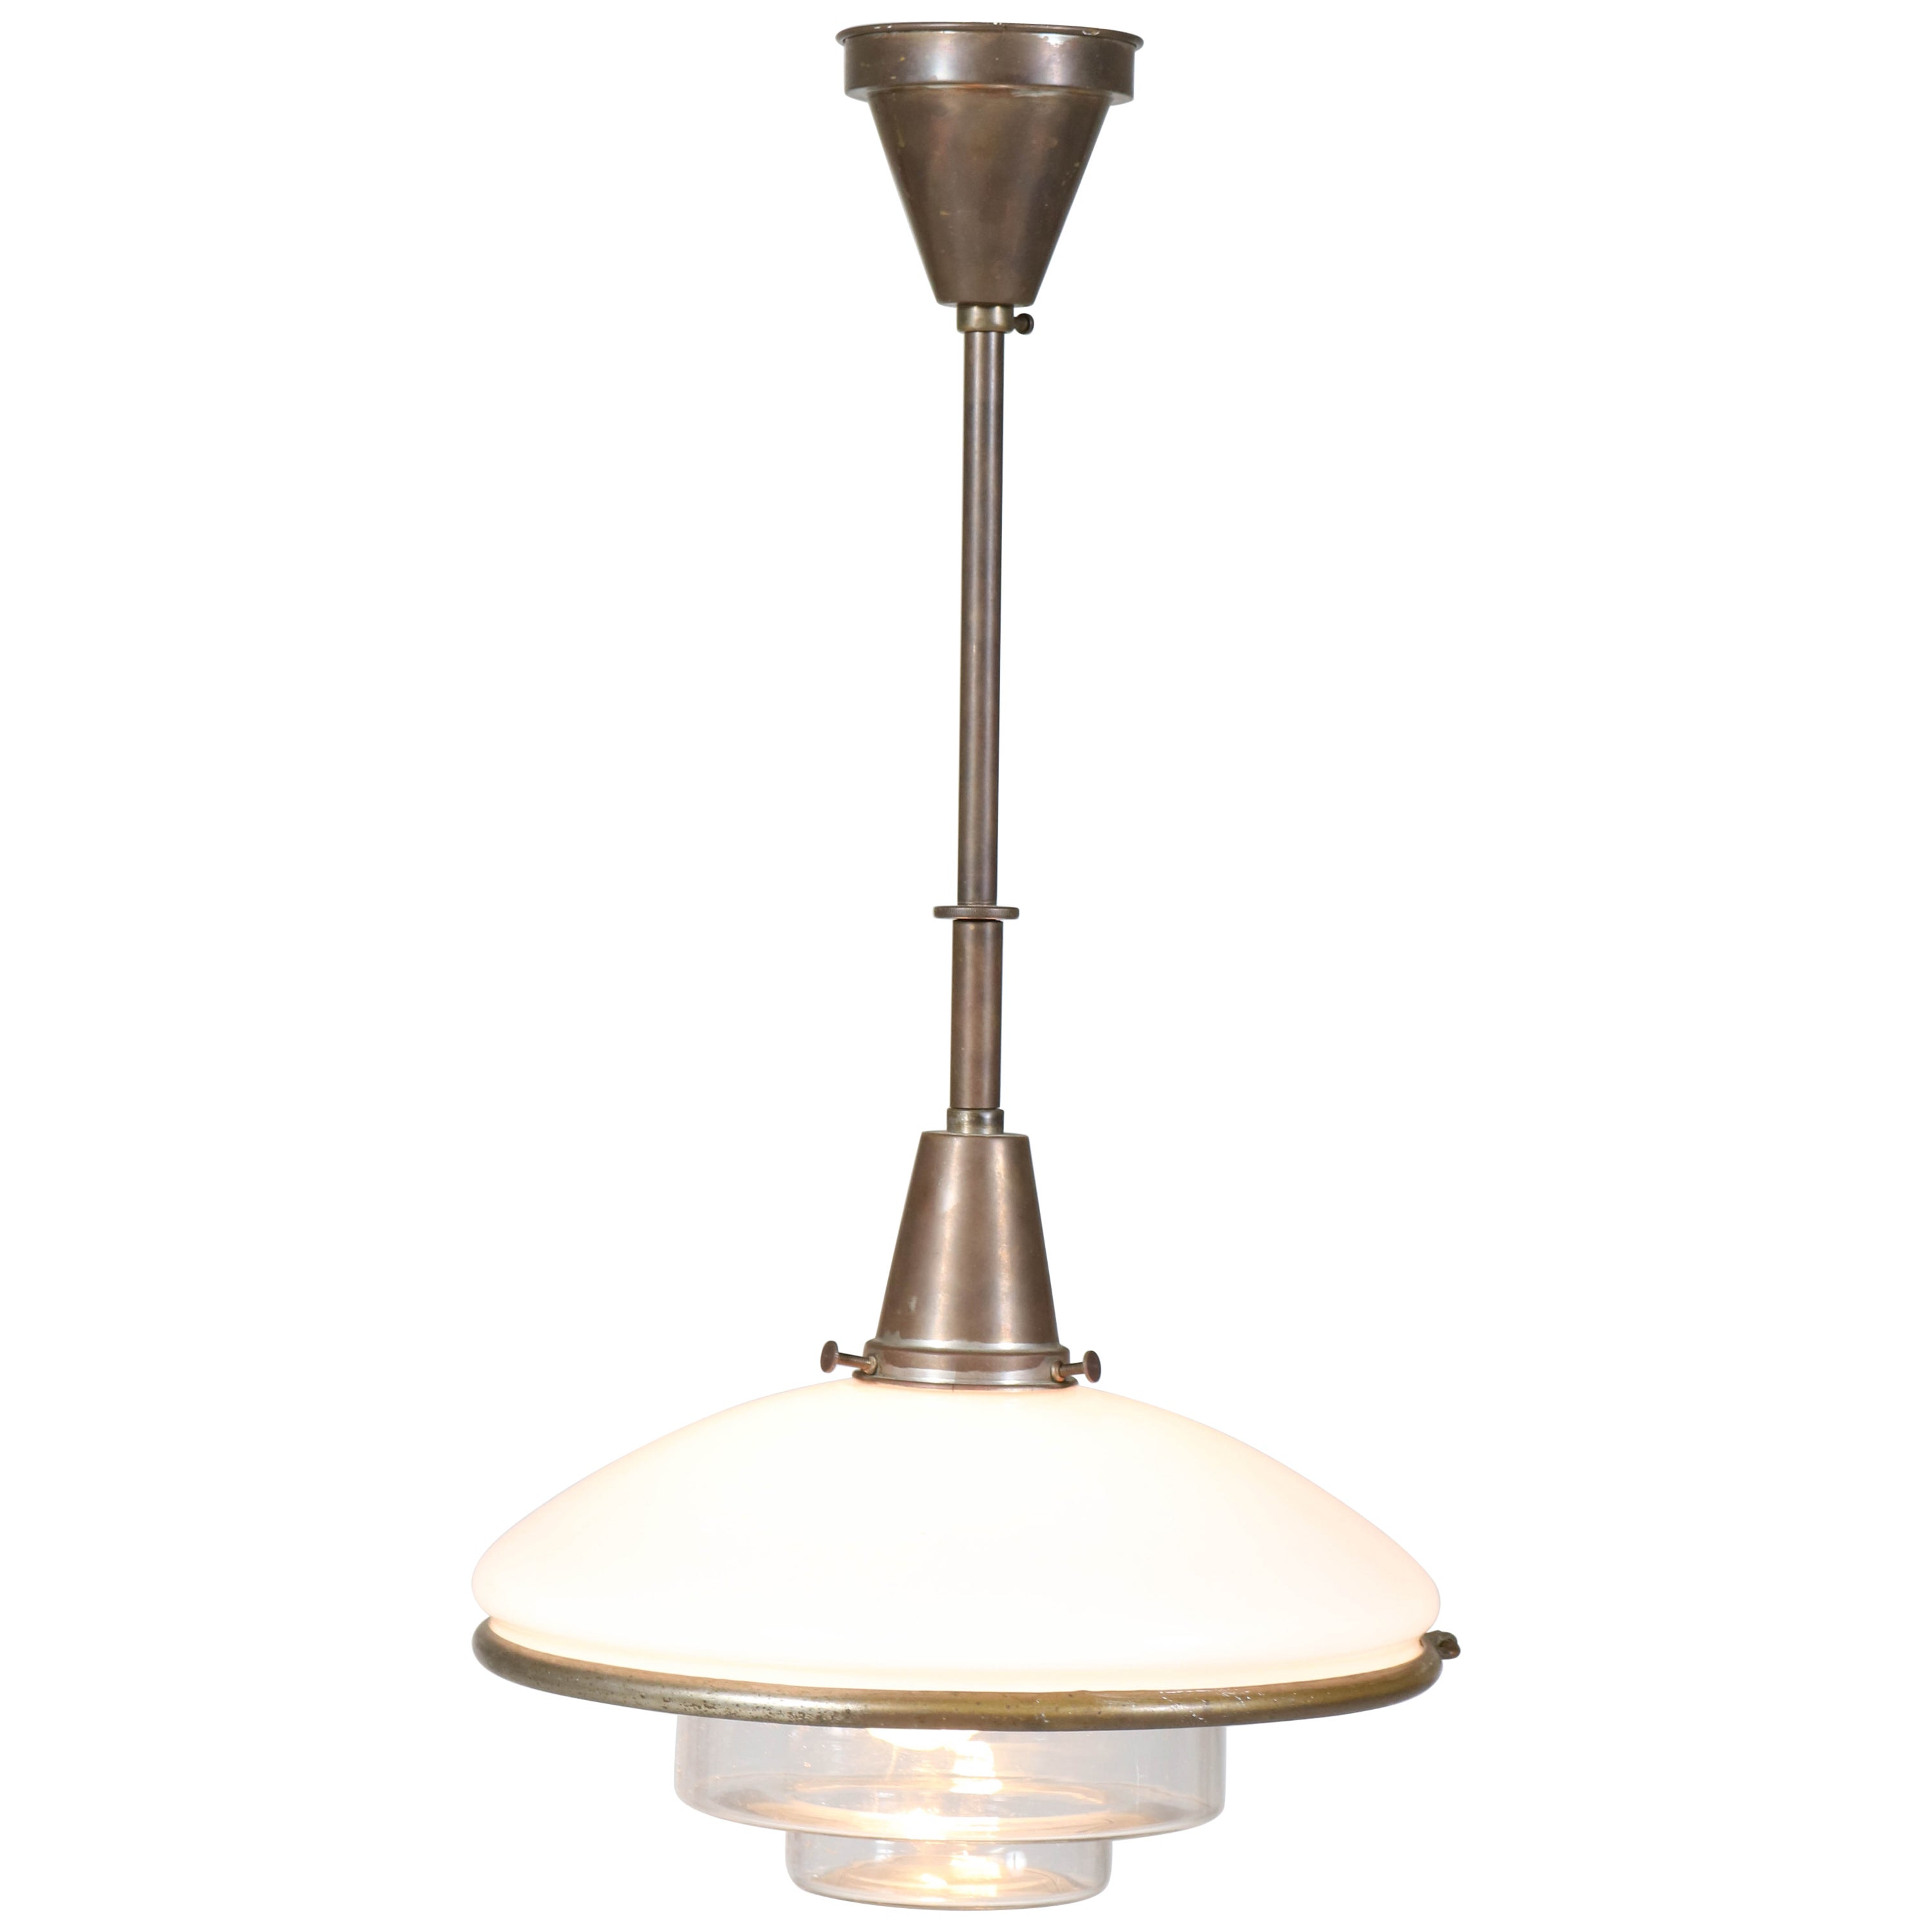 Bauhaus Brass and Opaline Pendant Lamp by Otto Müller for Sistrah Licht, 1930s